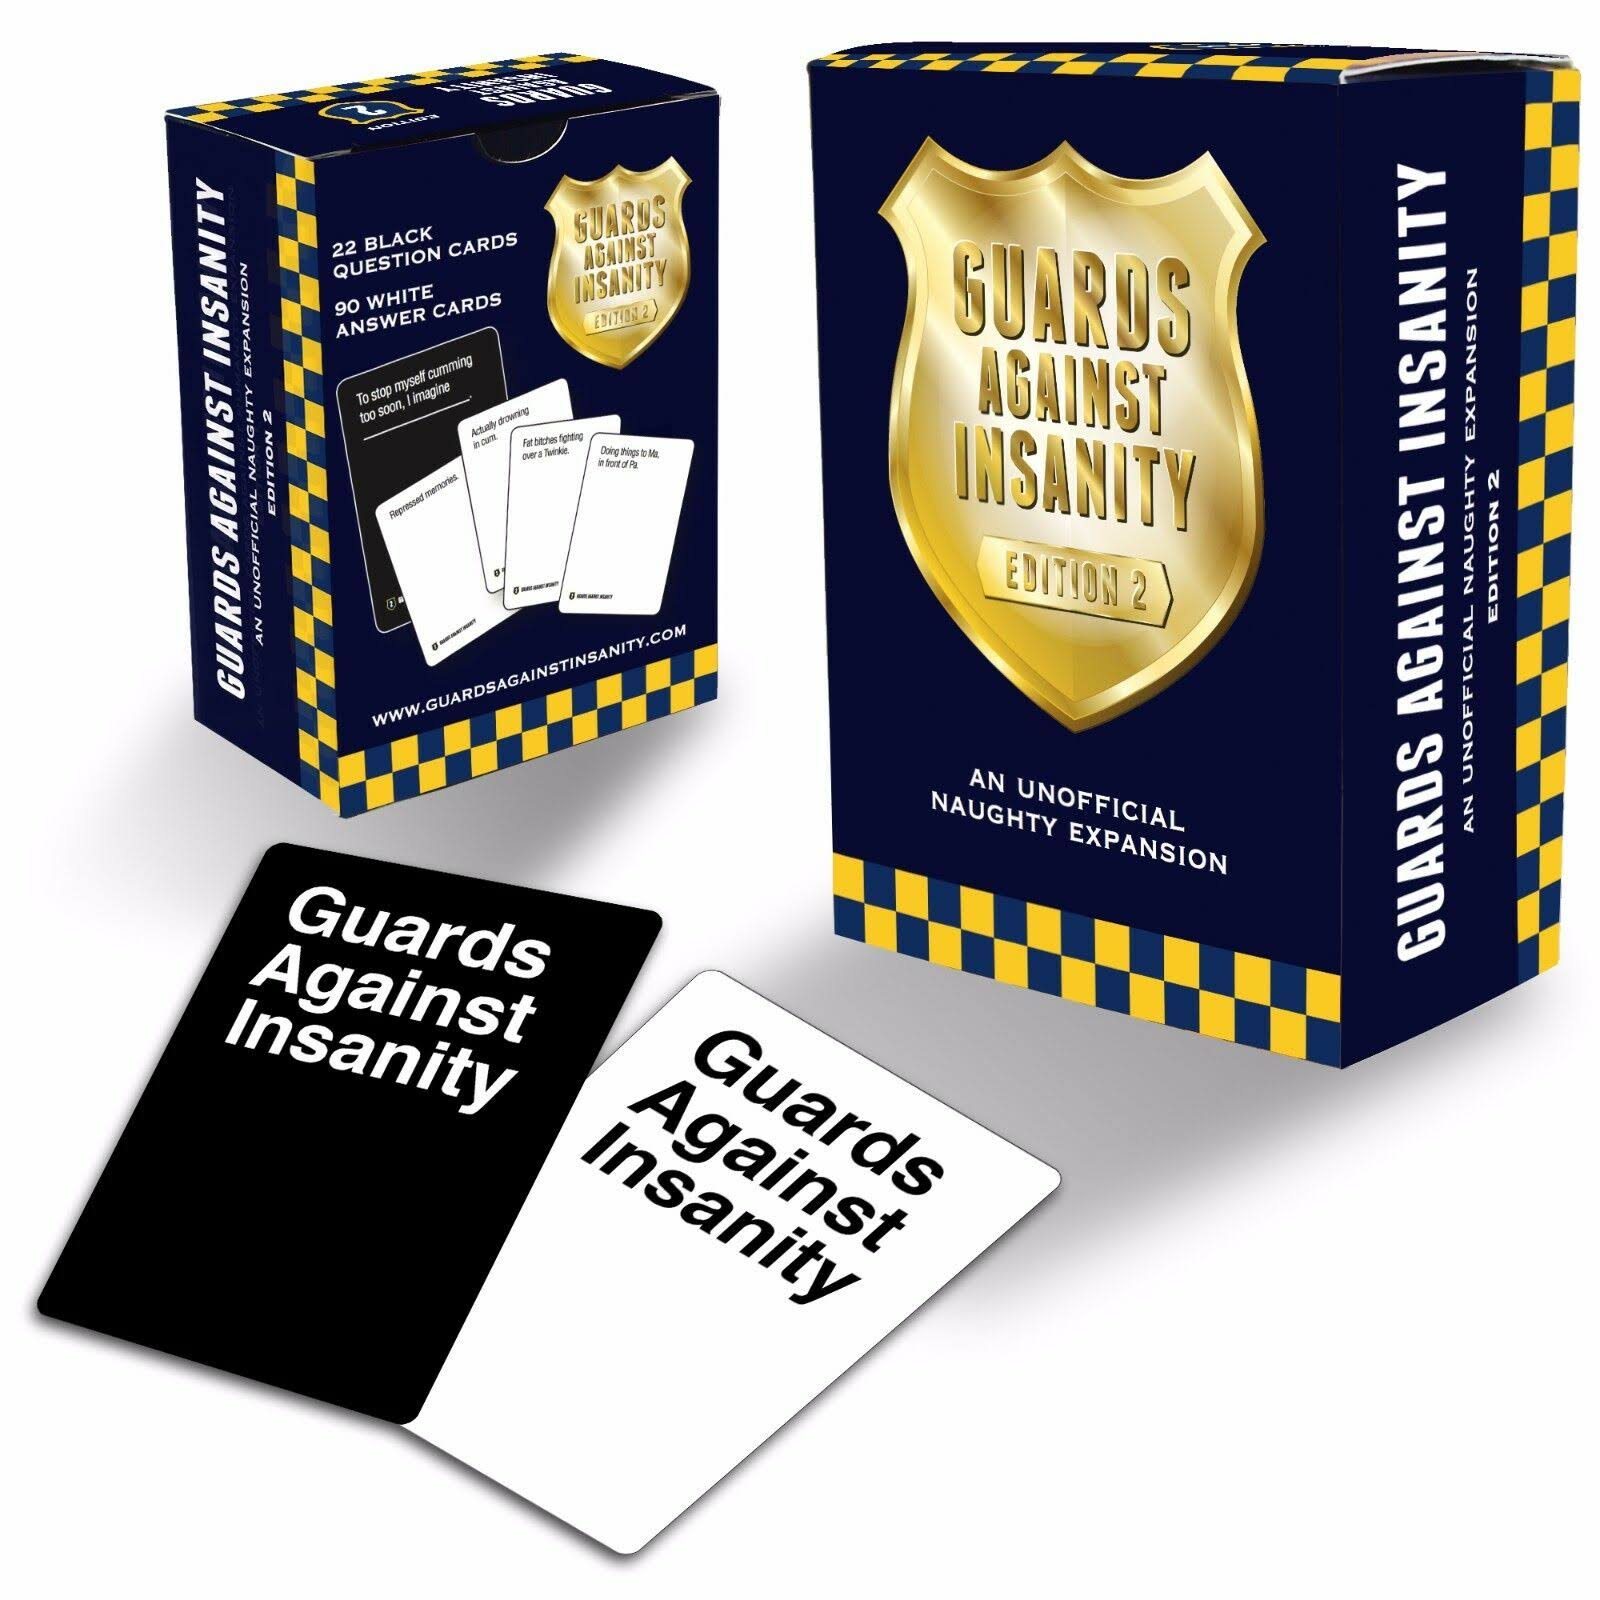 Guards Against Insanity Edition 2: An Unofficial Naughty Expansion Pack